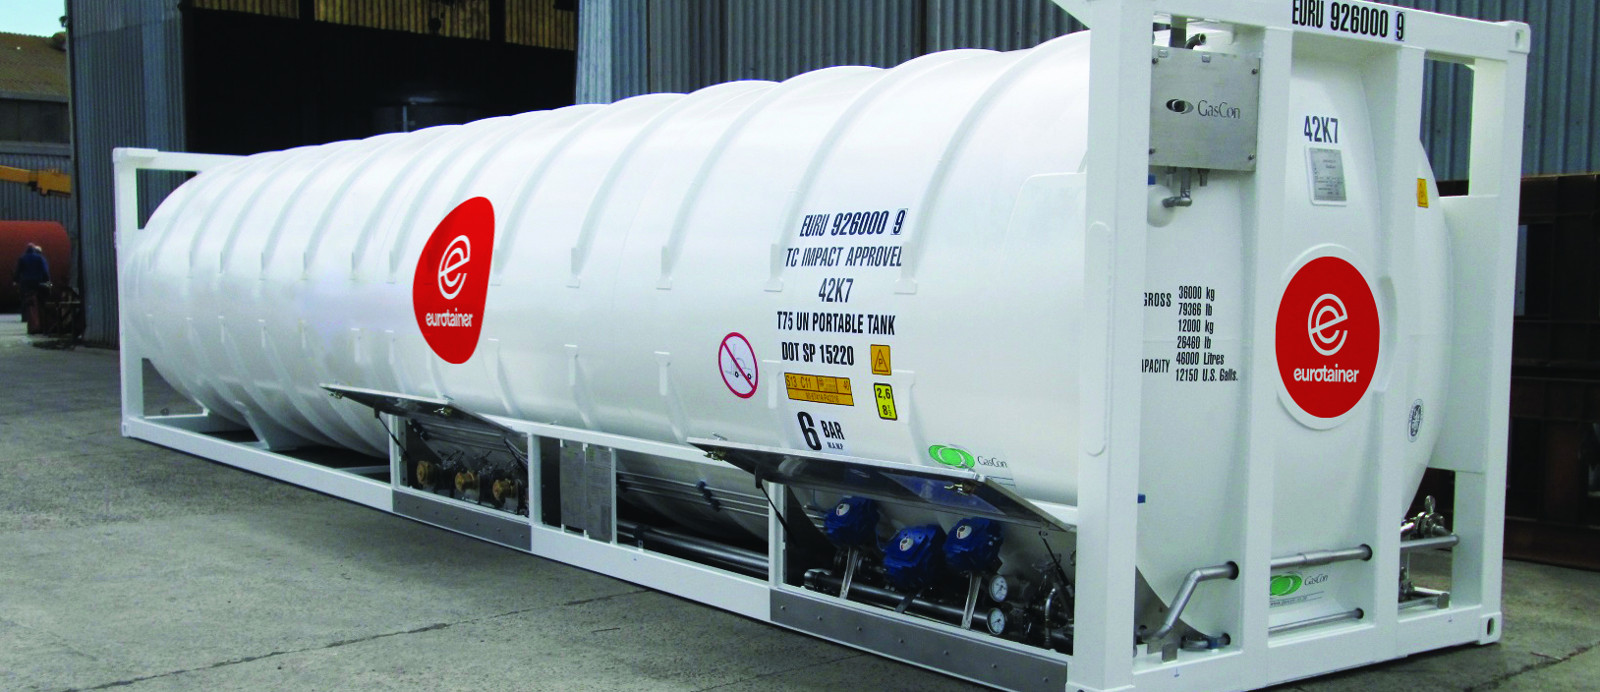 The #1 Tank in Container Leasing